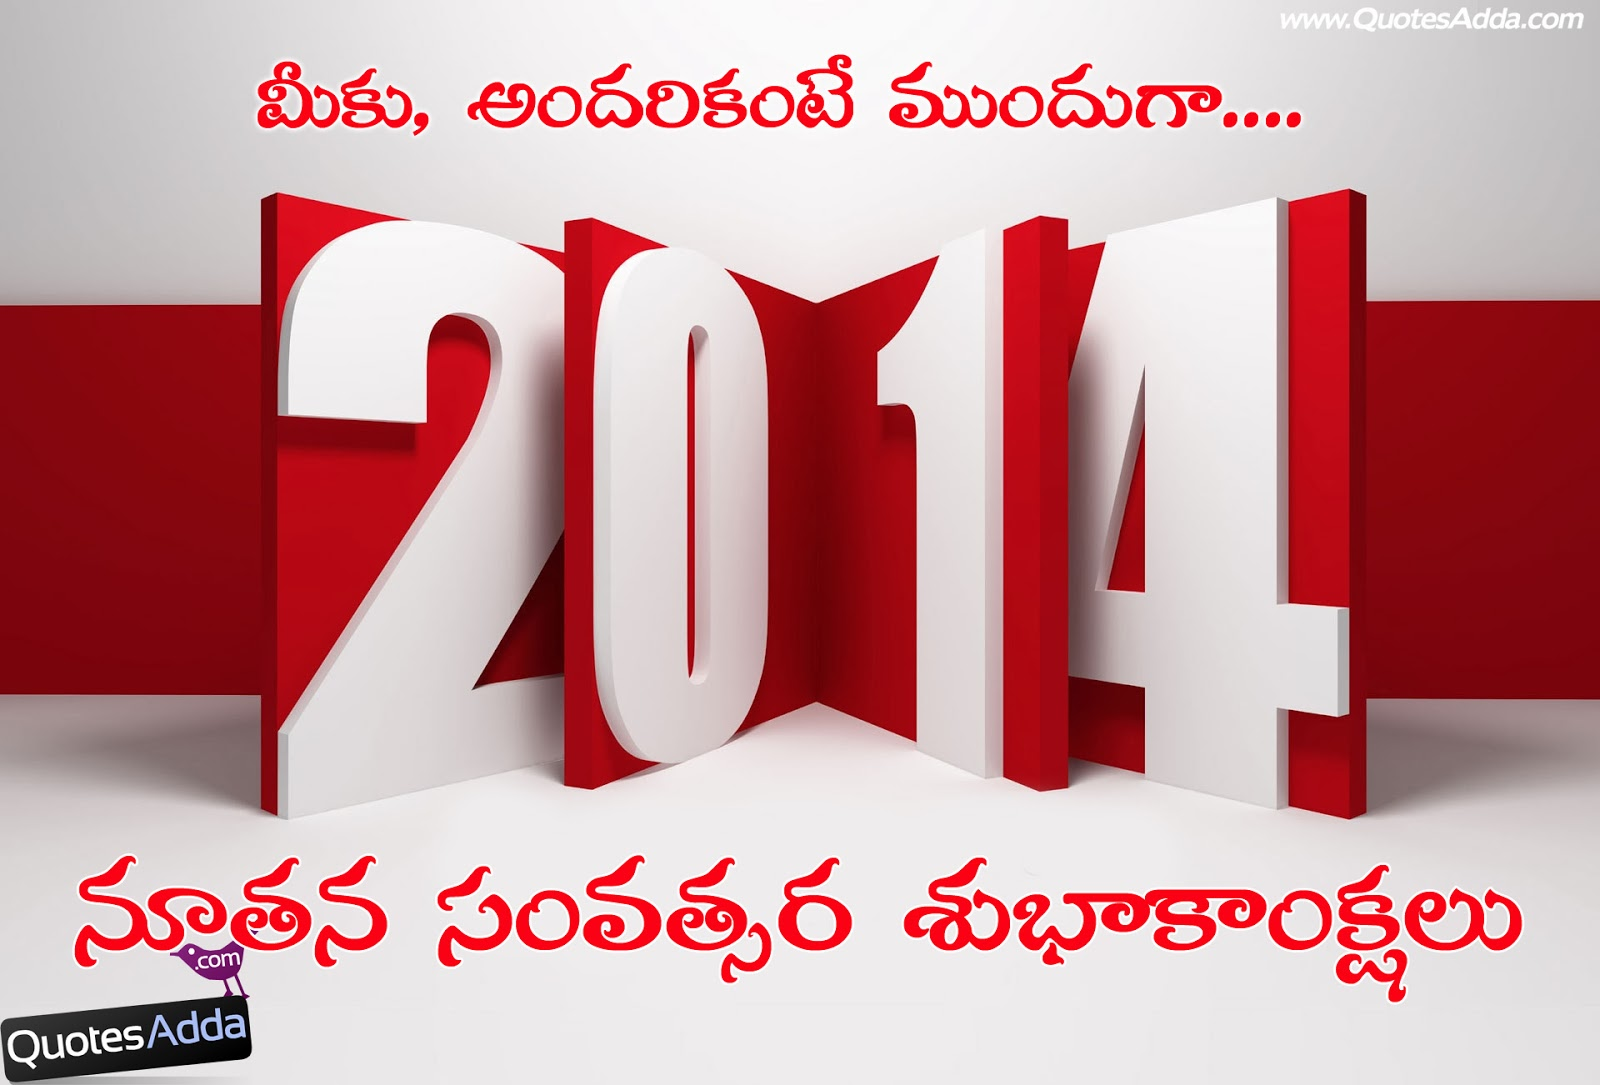 Advance Happy New Year Telugu Images 2014 Happy New Year Telugu. 1600 x 1085.Happy New Years Ascii Art